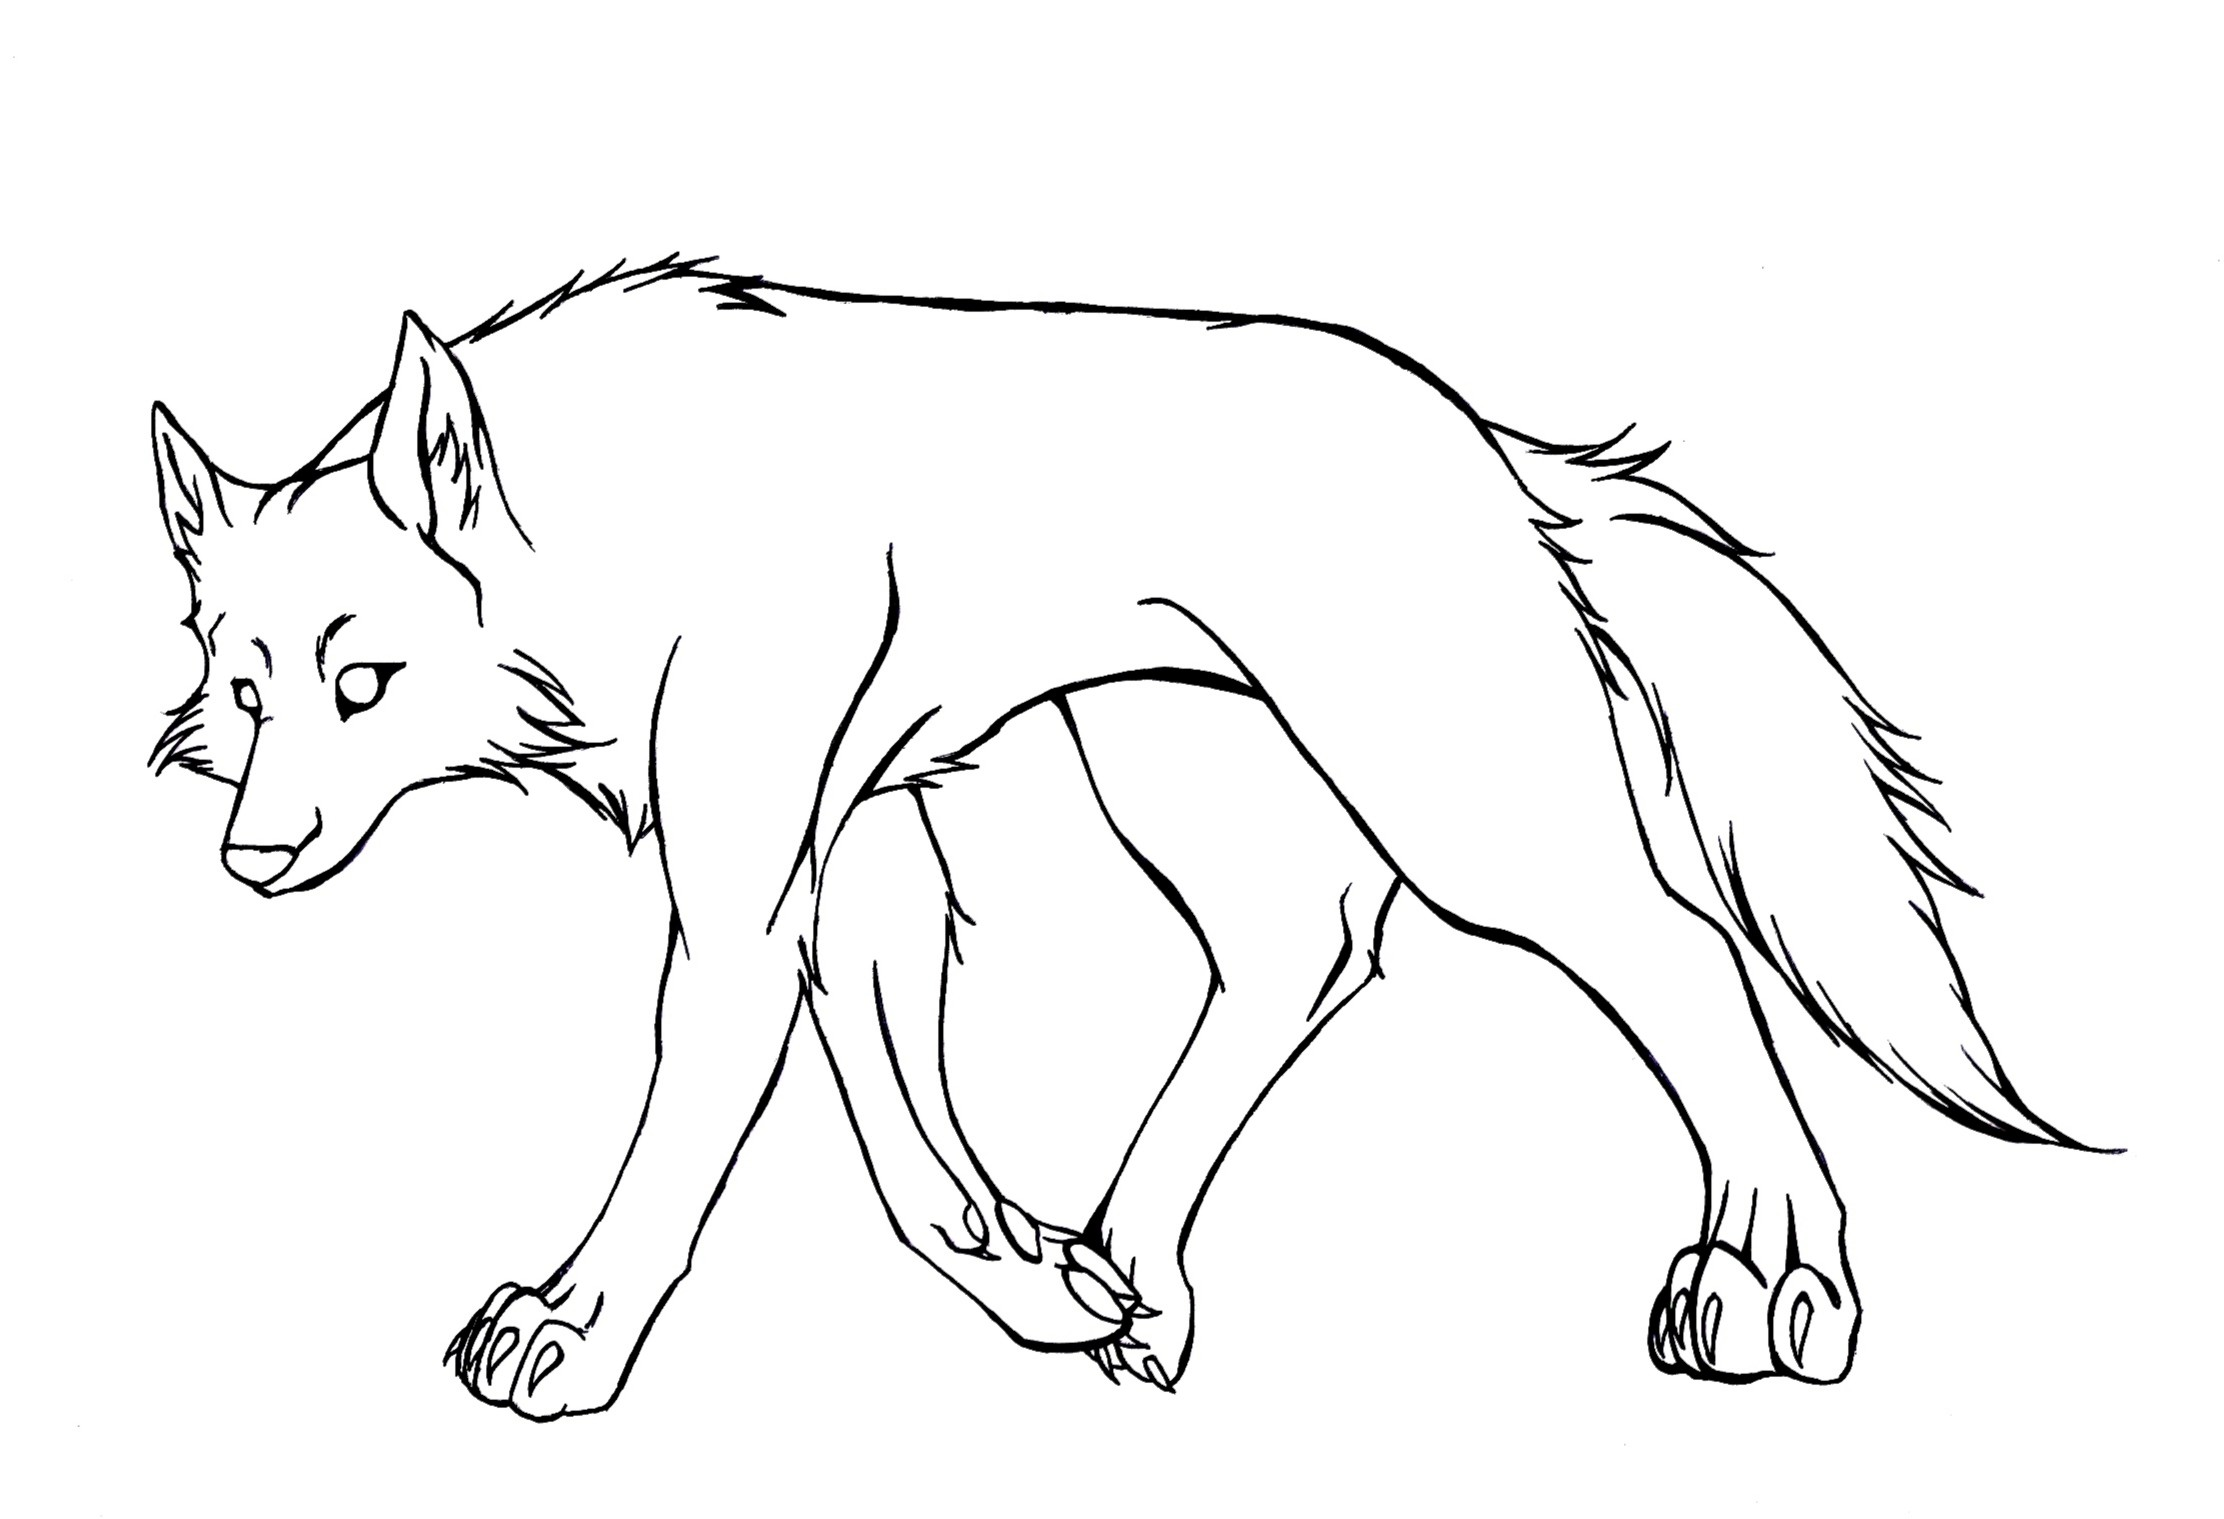 Simple Wolf Lineart : Easy cartoon wolf drawings newhairstylesformen